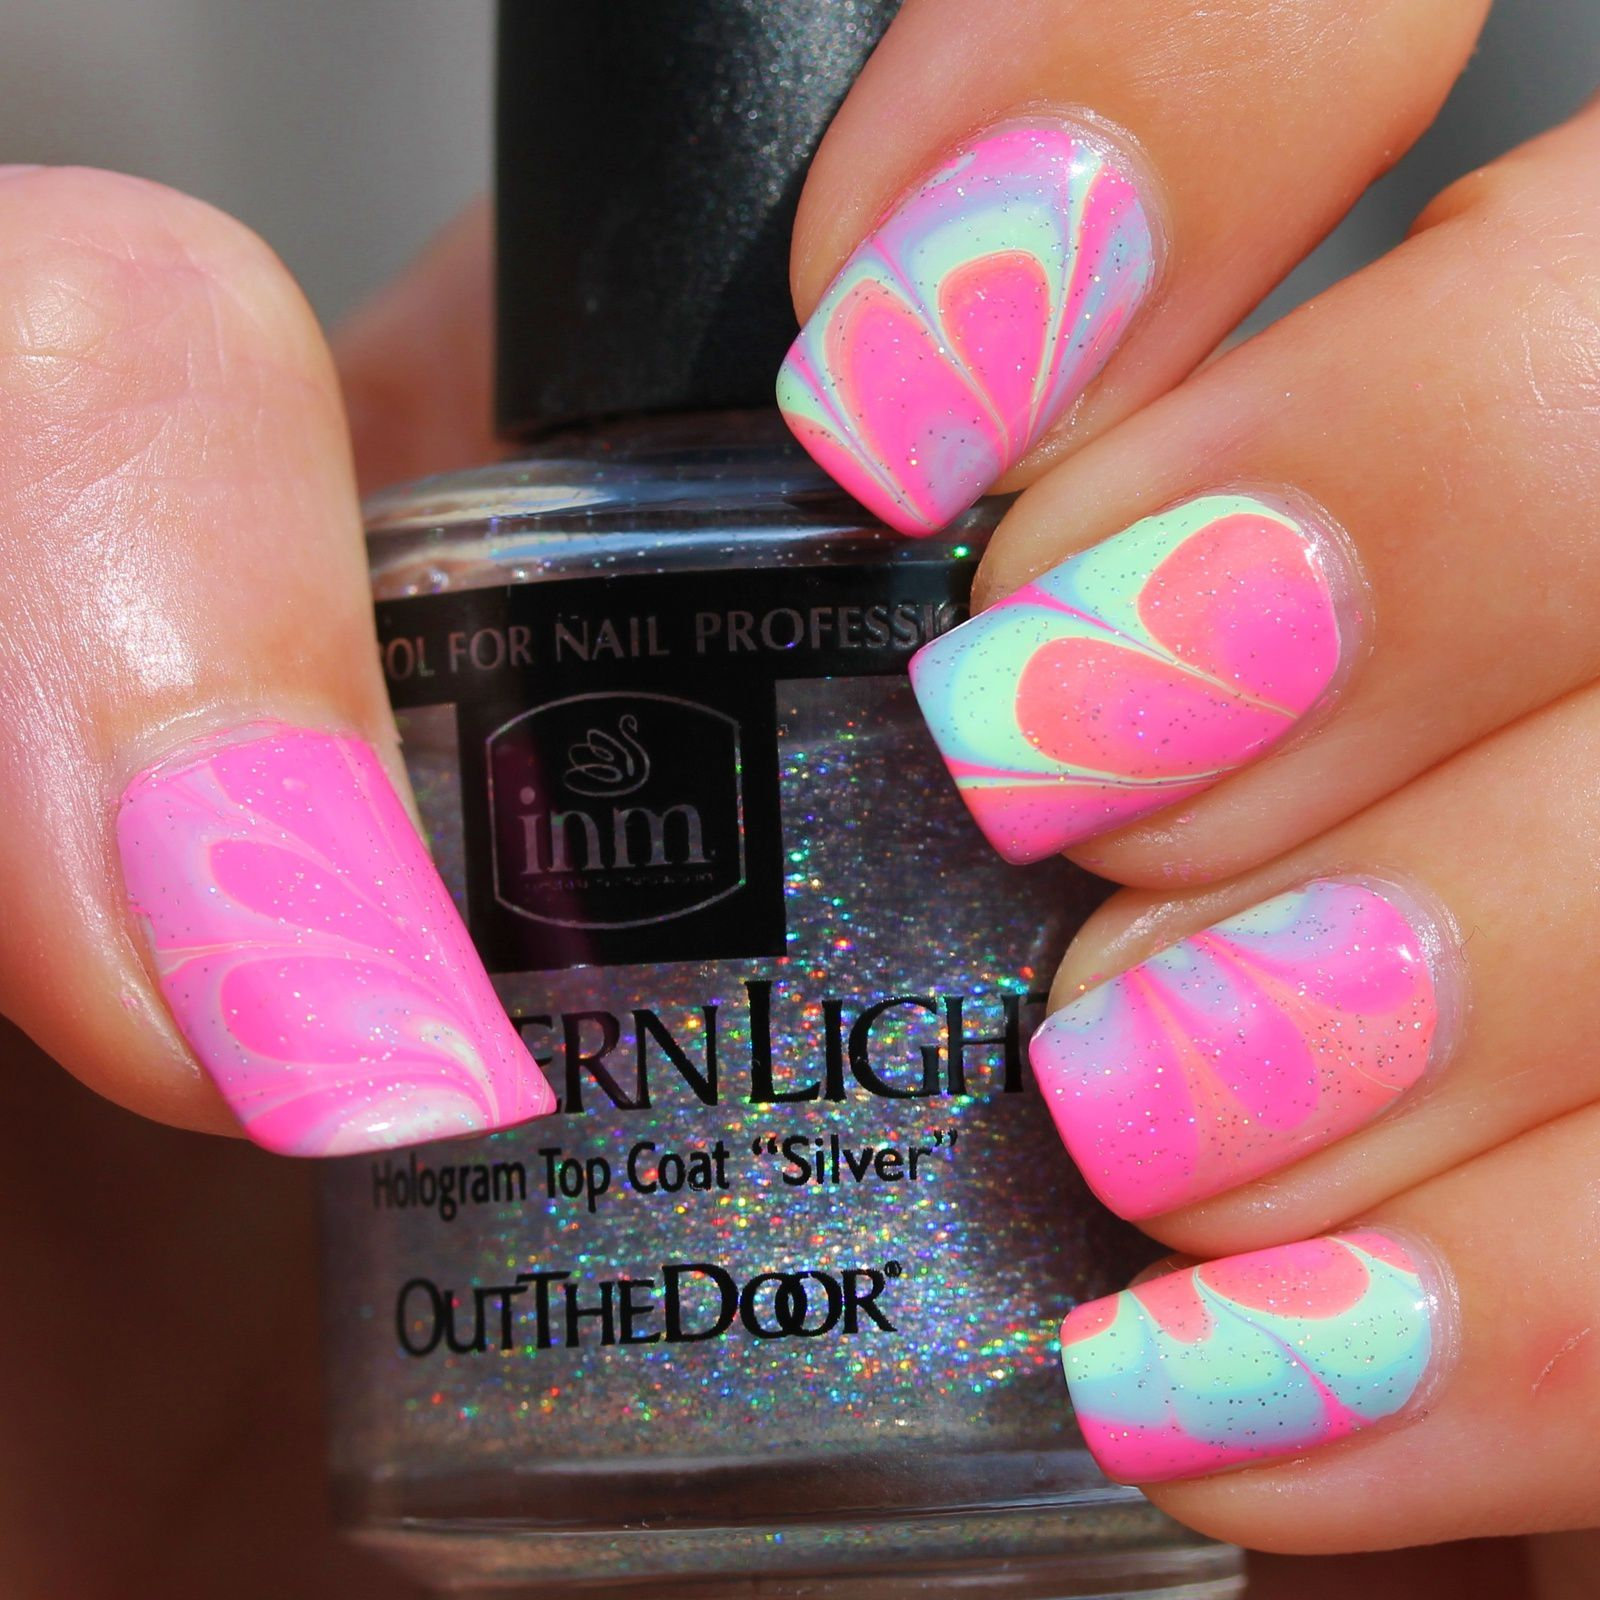 Duri Rejuvacote / Lilypad Lacquer In The Milkyway / Summer Brights Water Marble / Northern Lights Top Coat